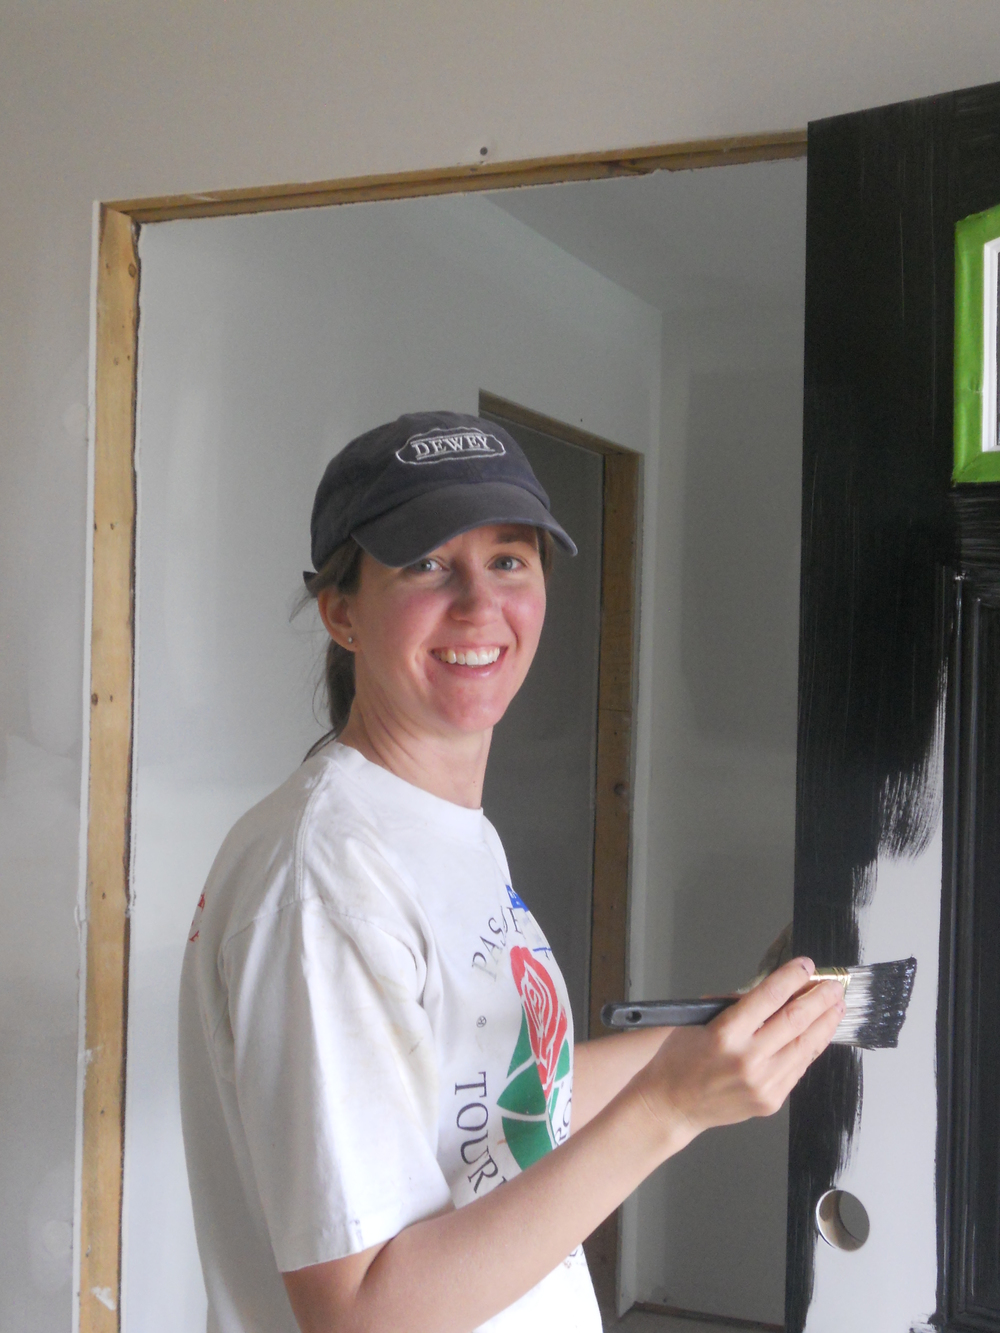 20131003 8 Habitat for Humanity Jennifer's Painint of Front Door.JPG